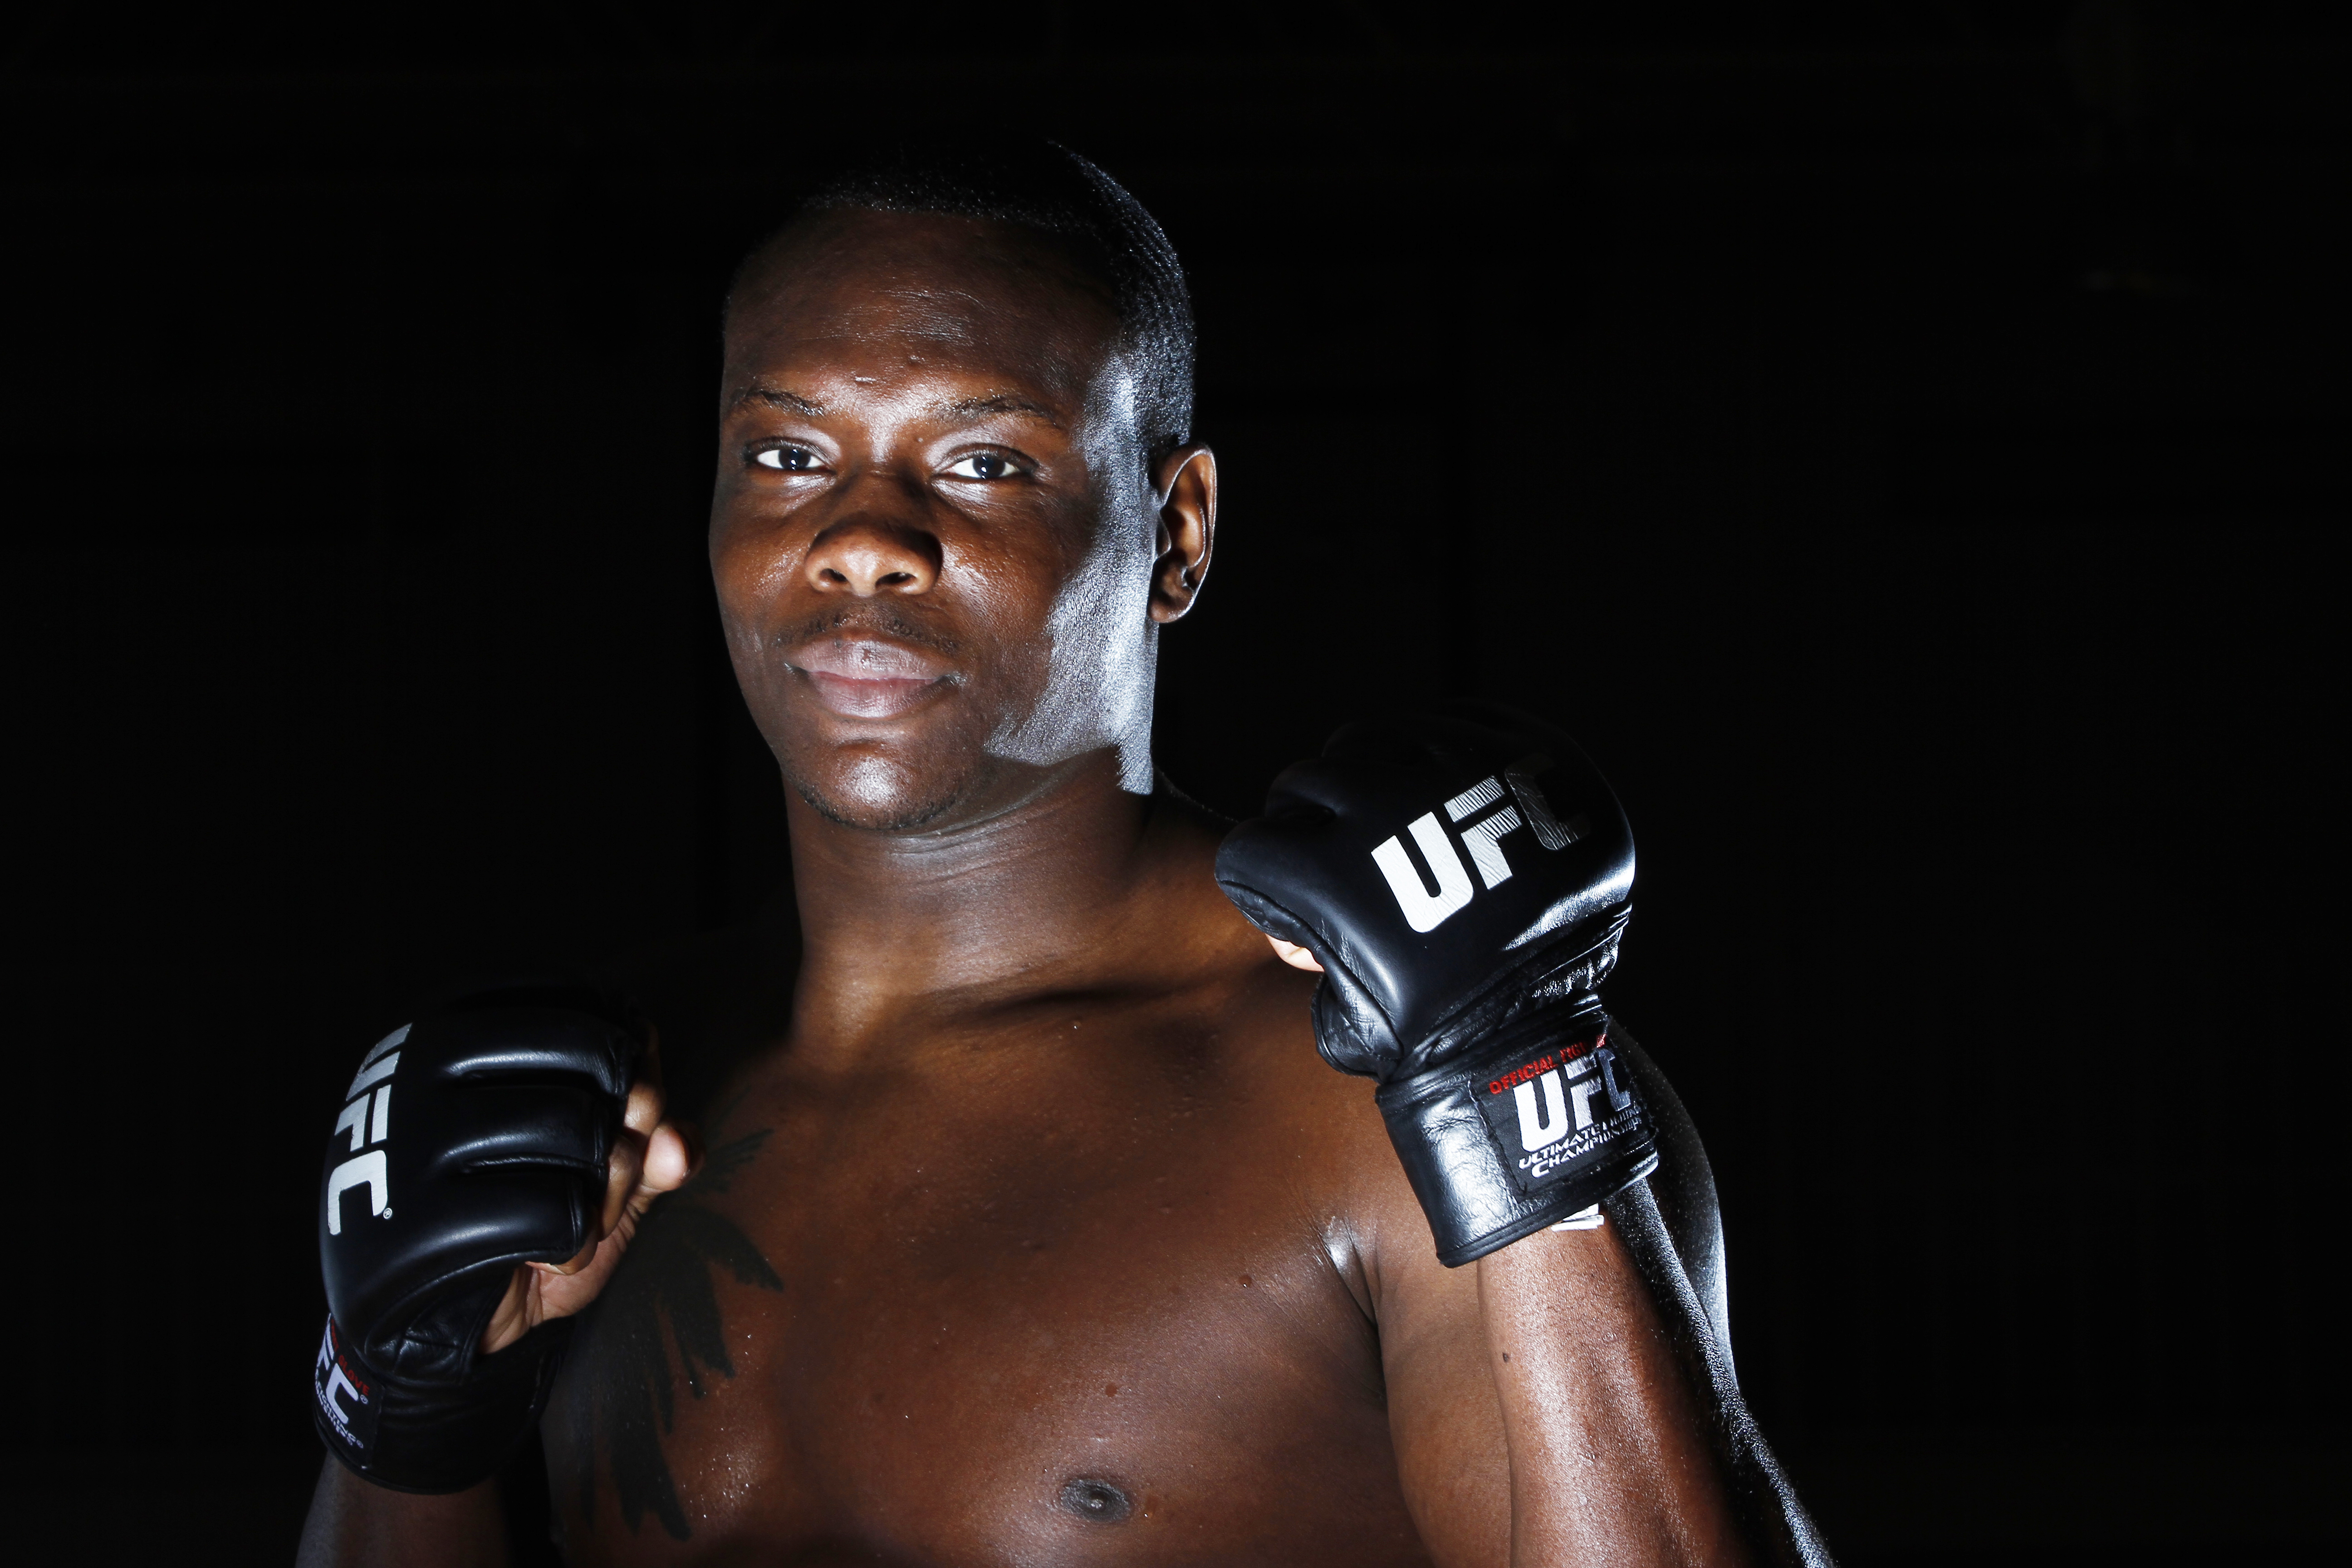 1024x600 ovince saint preux ultimate fighting championship 5184x3456